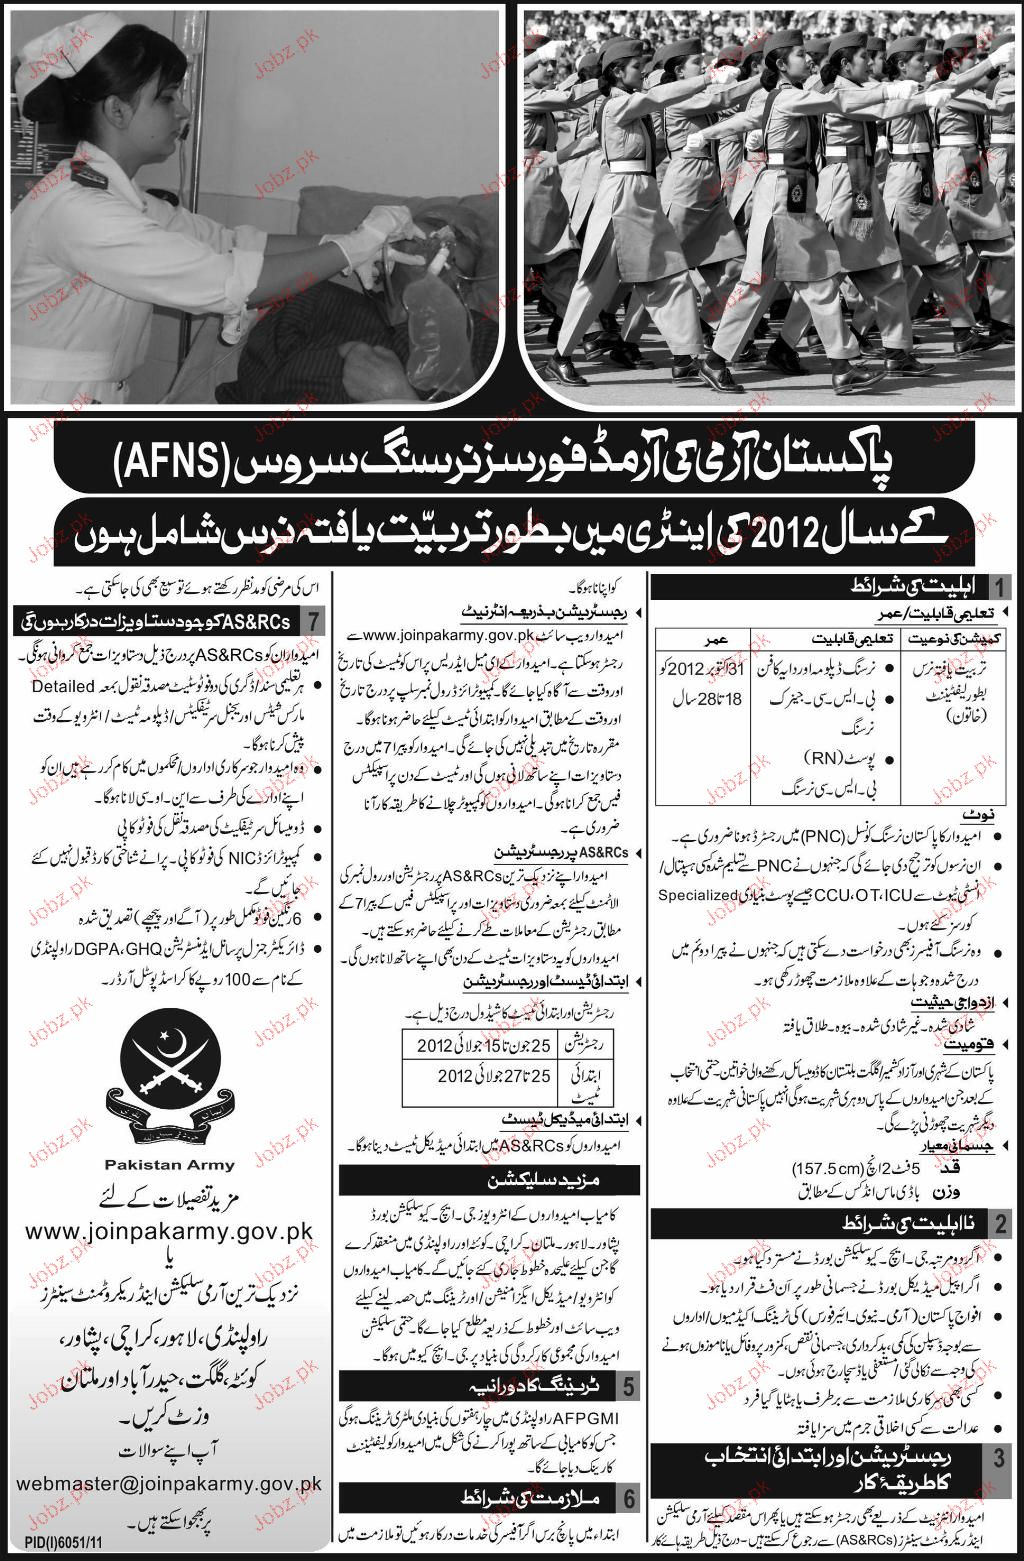 Recruitment of Nursing Staff in Pakistan Army